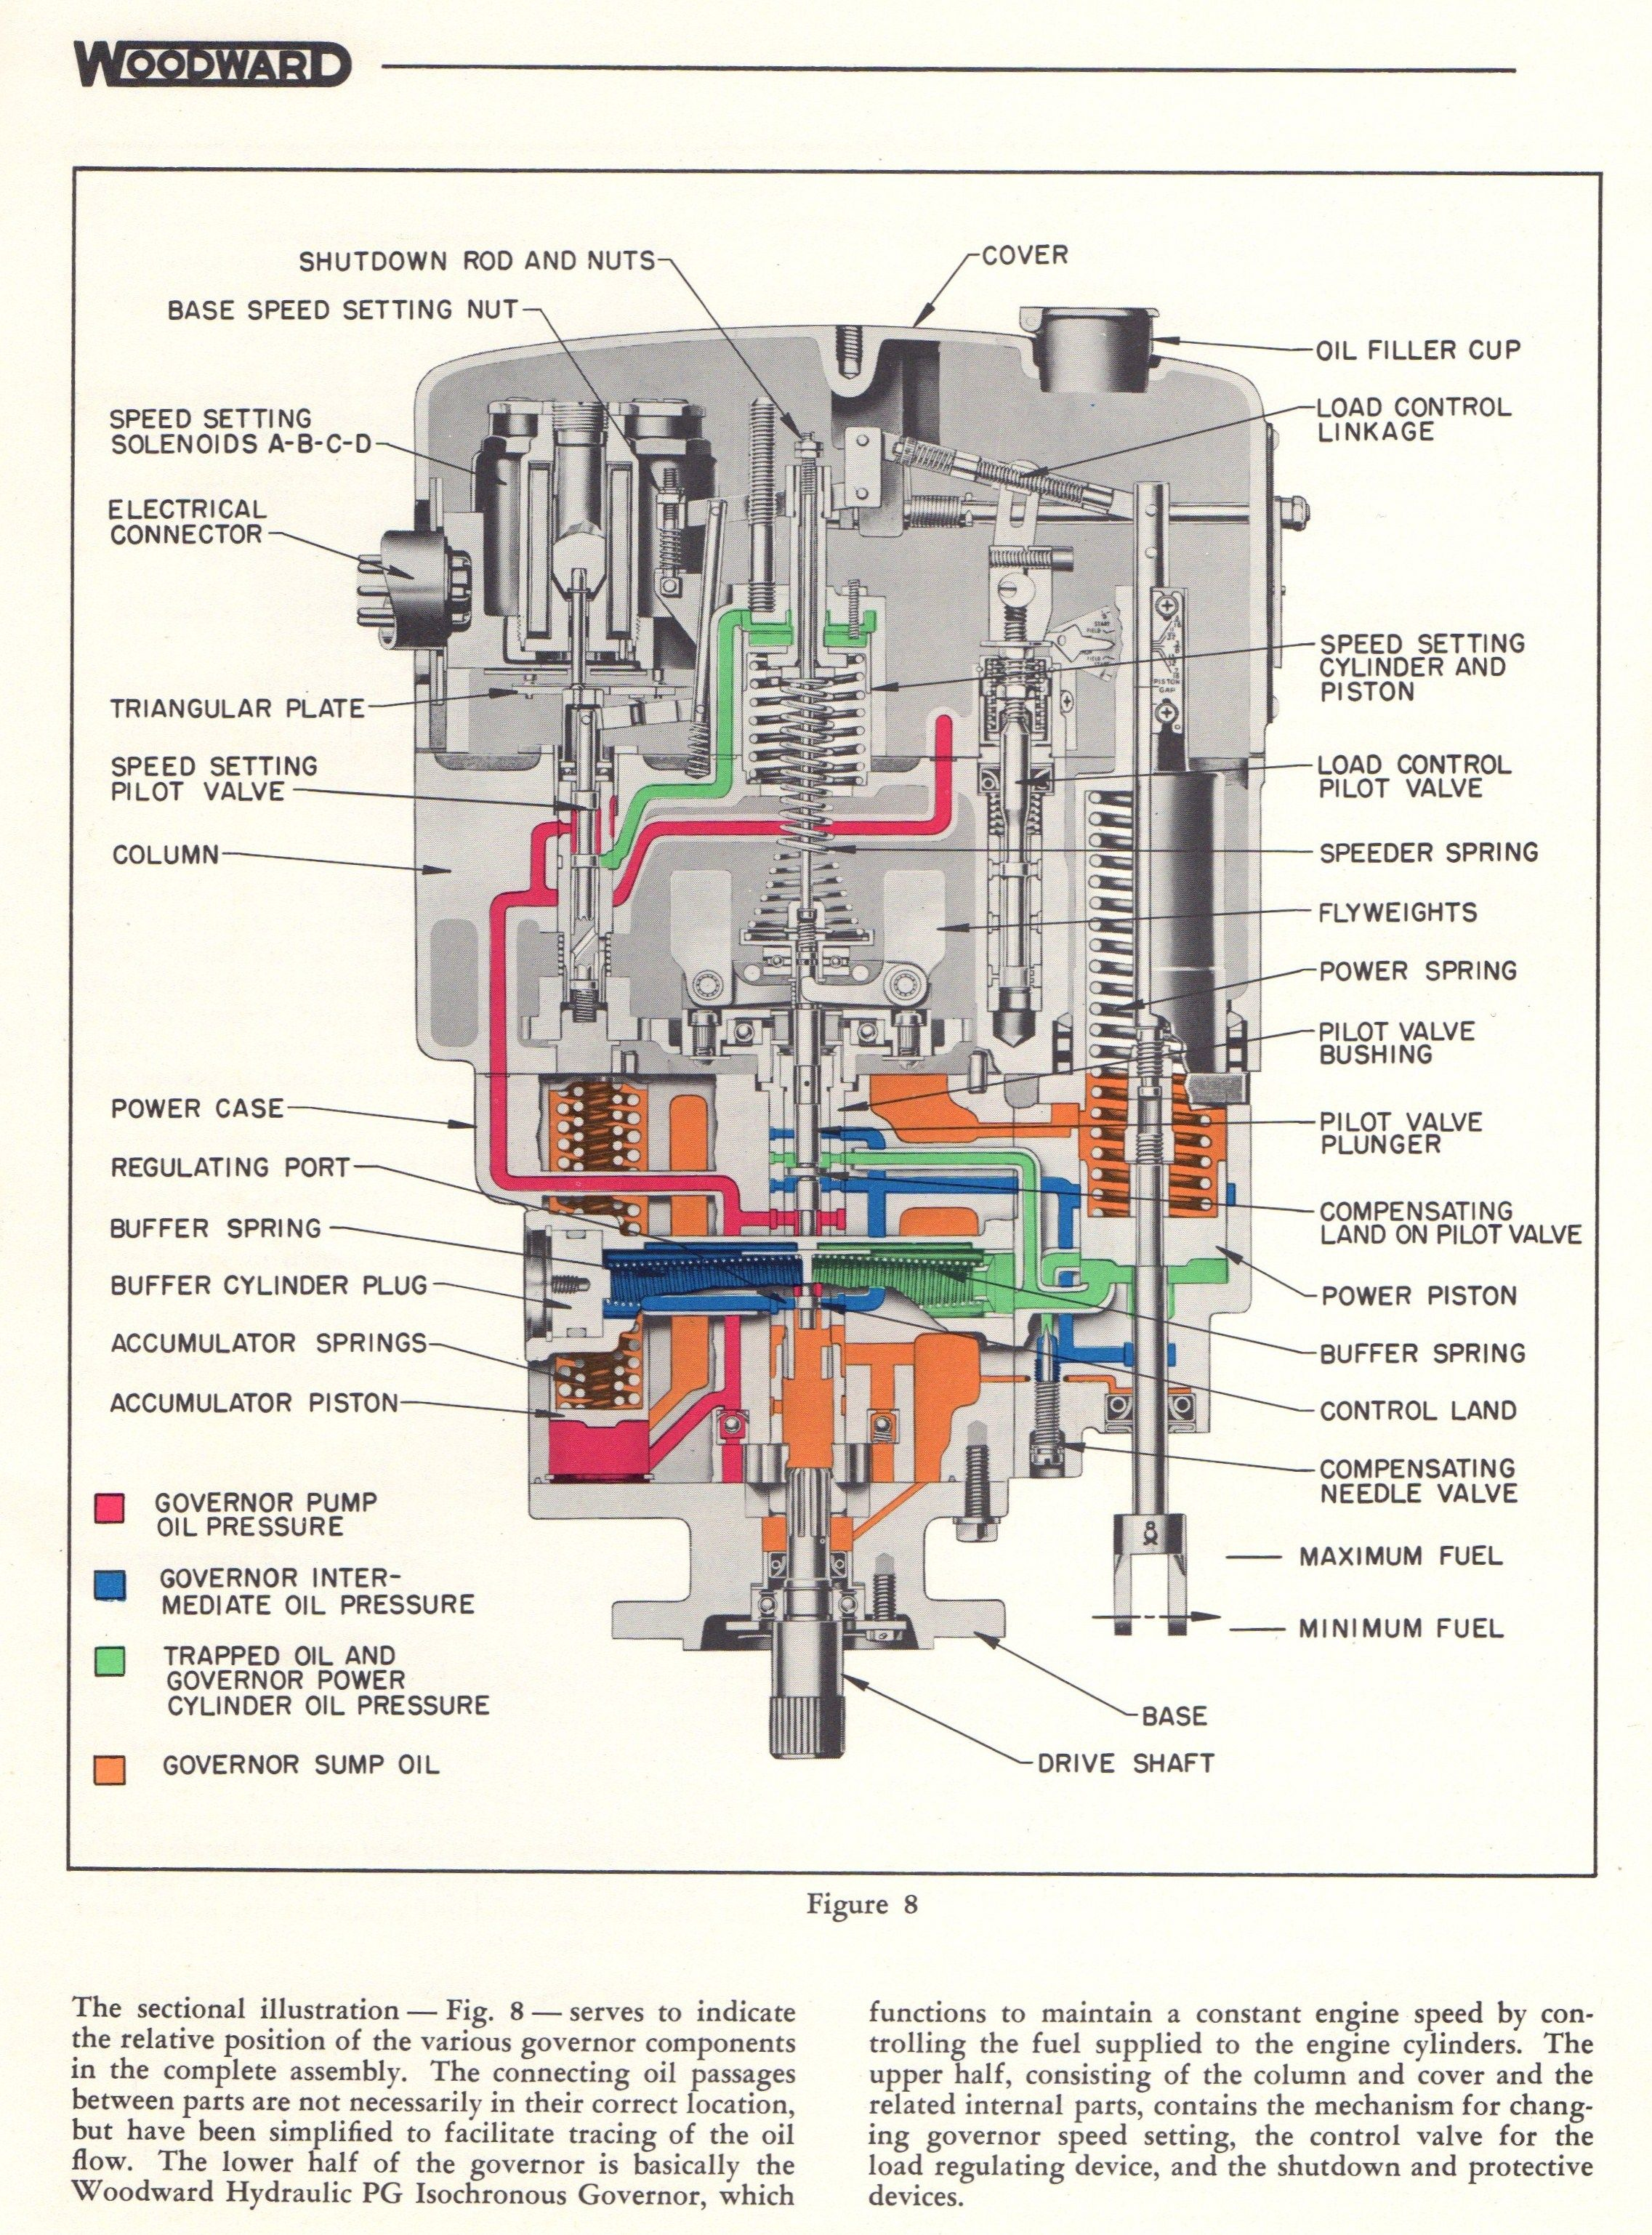 cut-away view of the woodward governor company's type pg series locomotive  diesel-electric engine governor from bulletin number 36001a